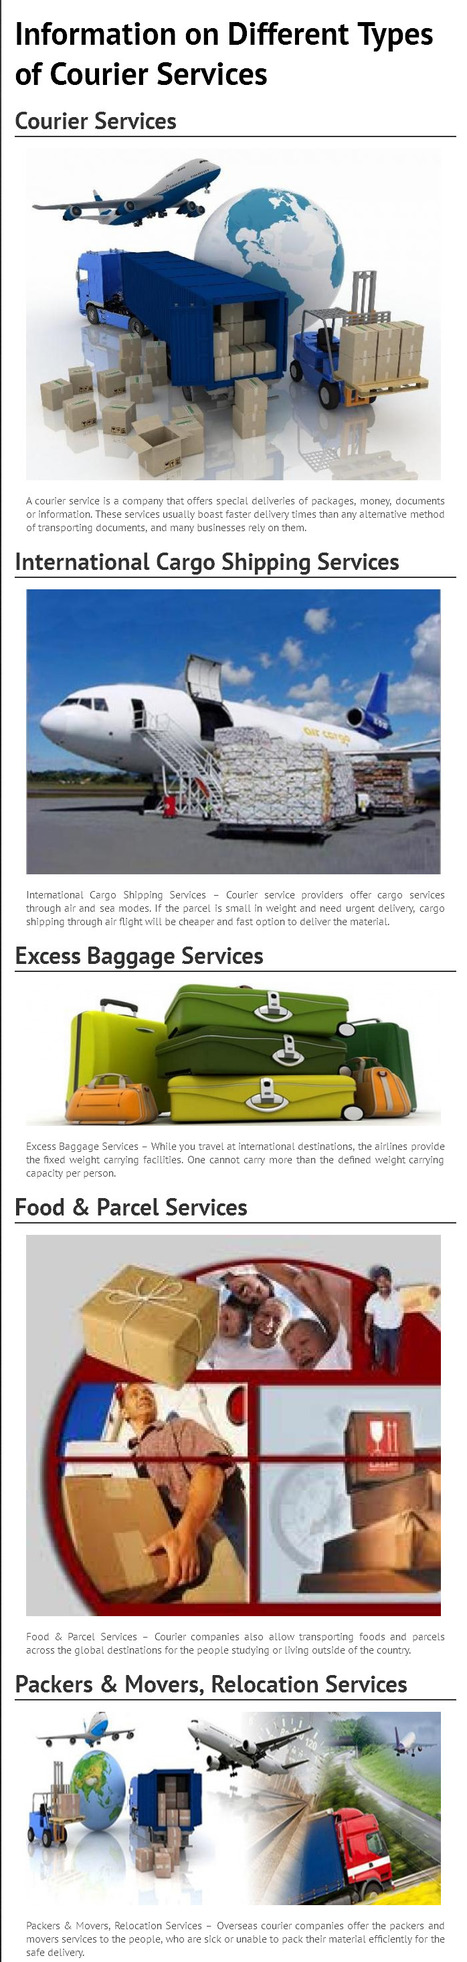 Information on Different Types of Courier Services [INFOGRAPH]   fastwayindia   Scoop.it